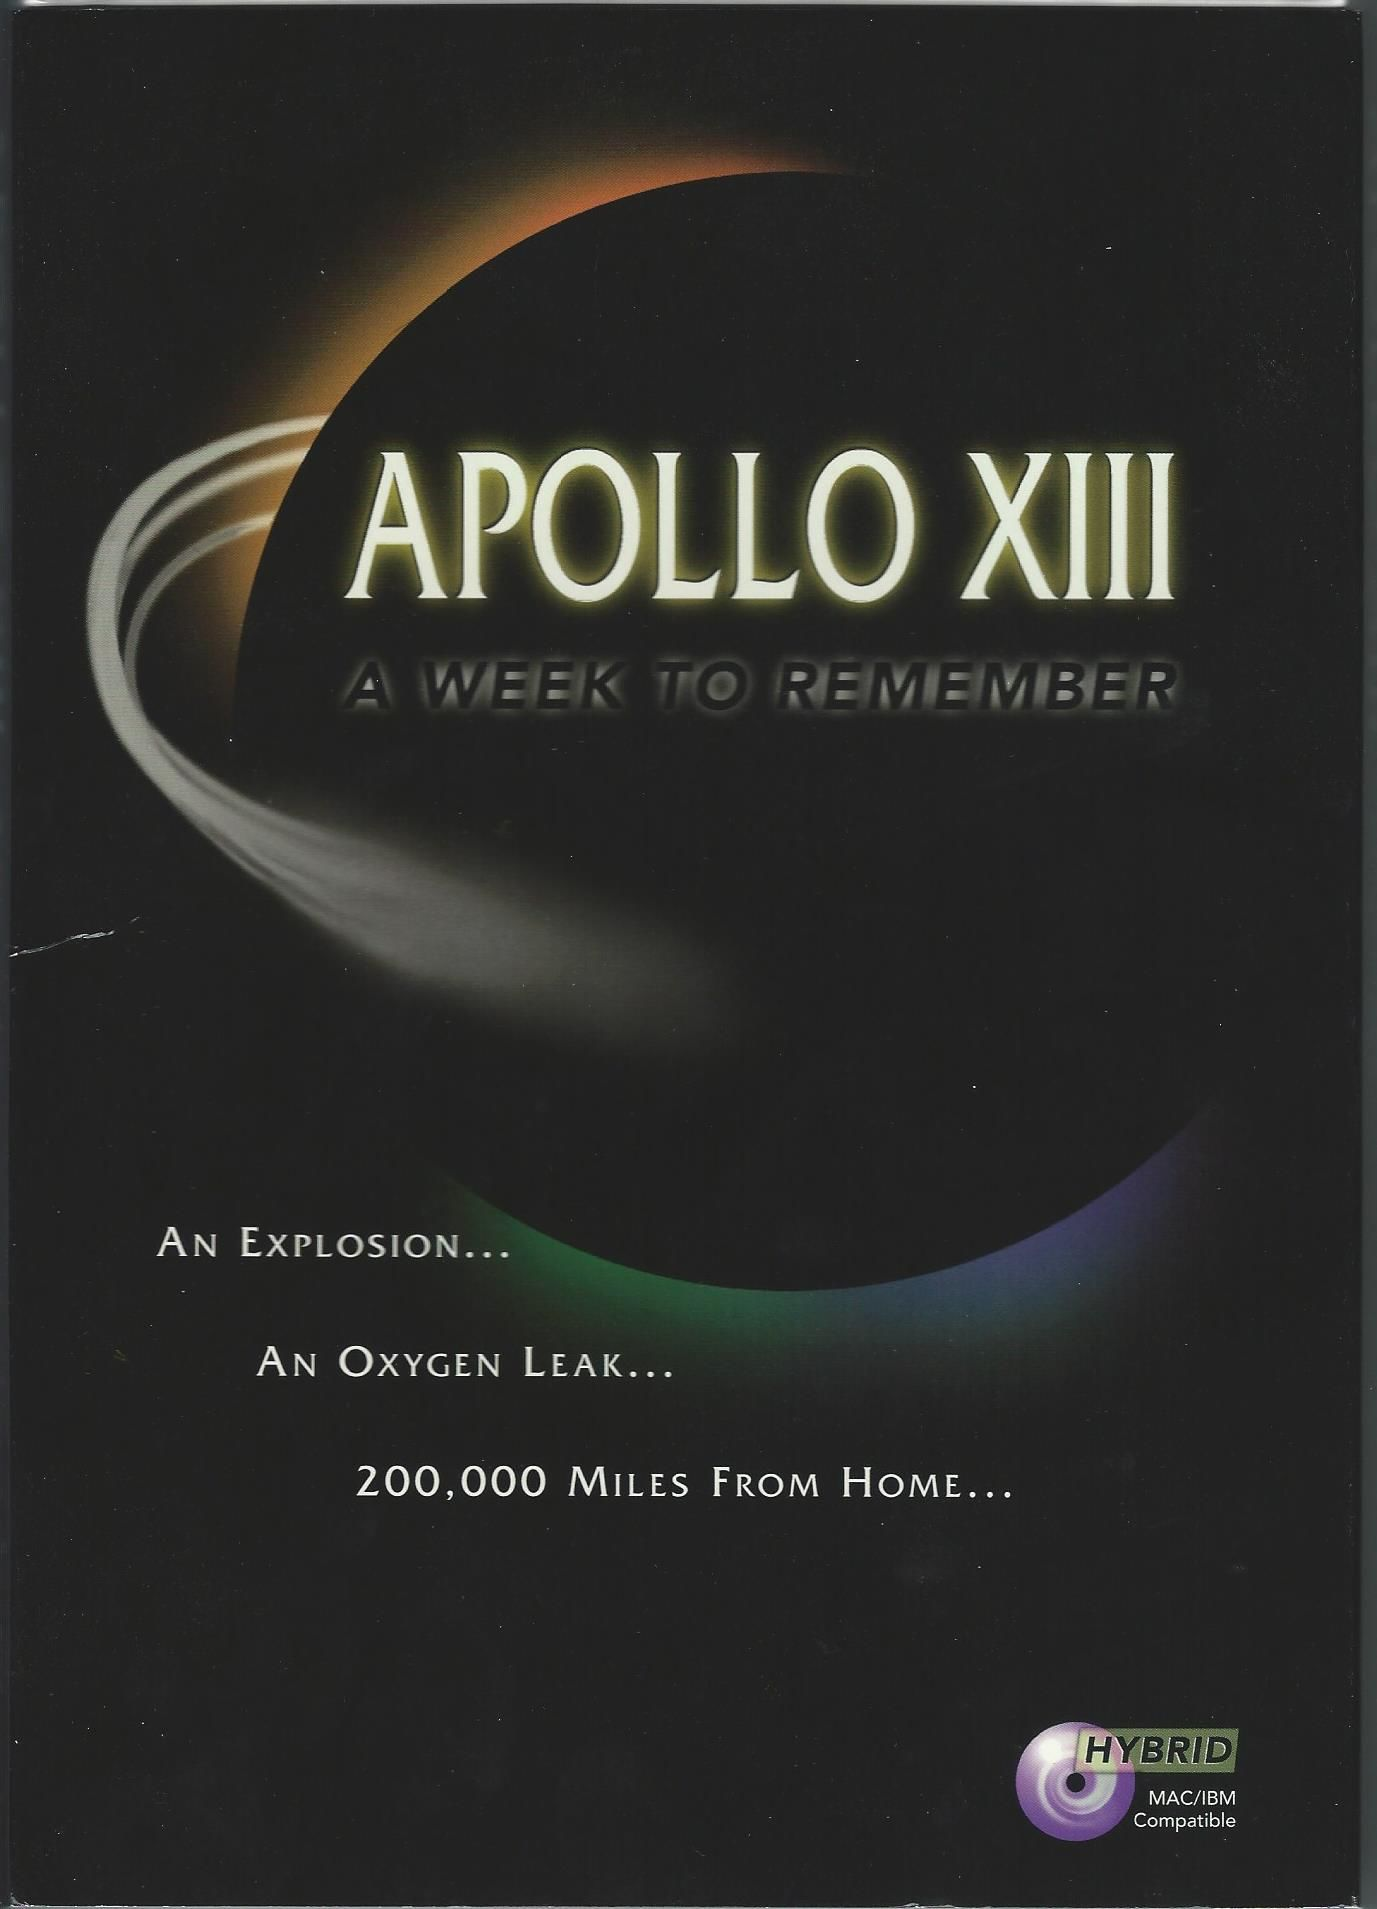 Apollo XIII: A week to remember